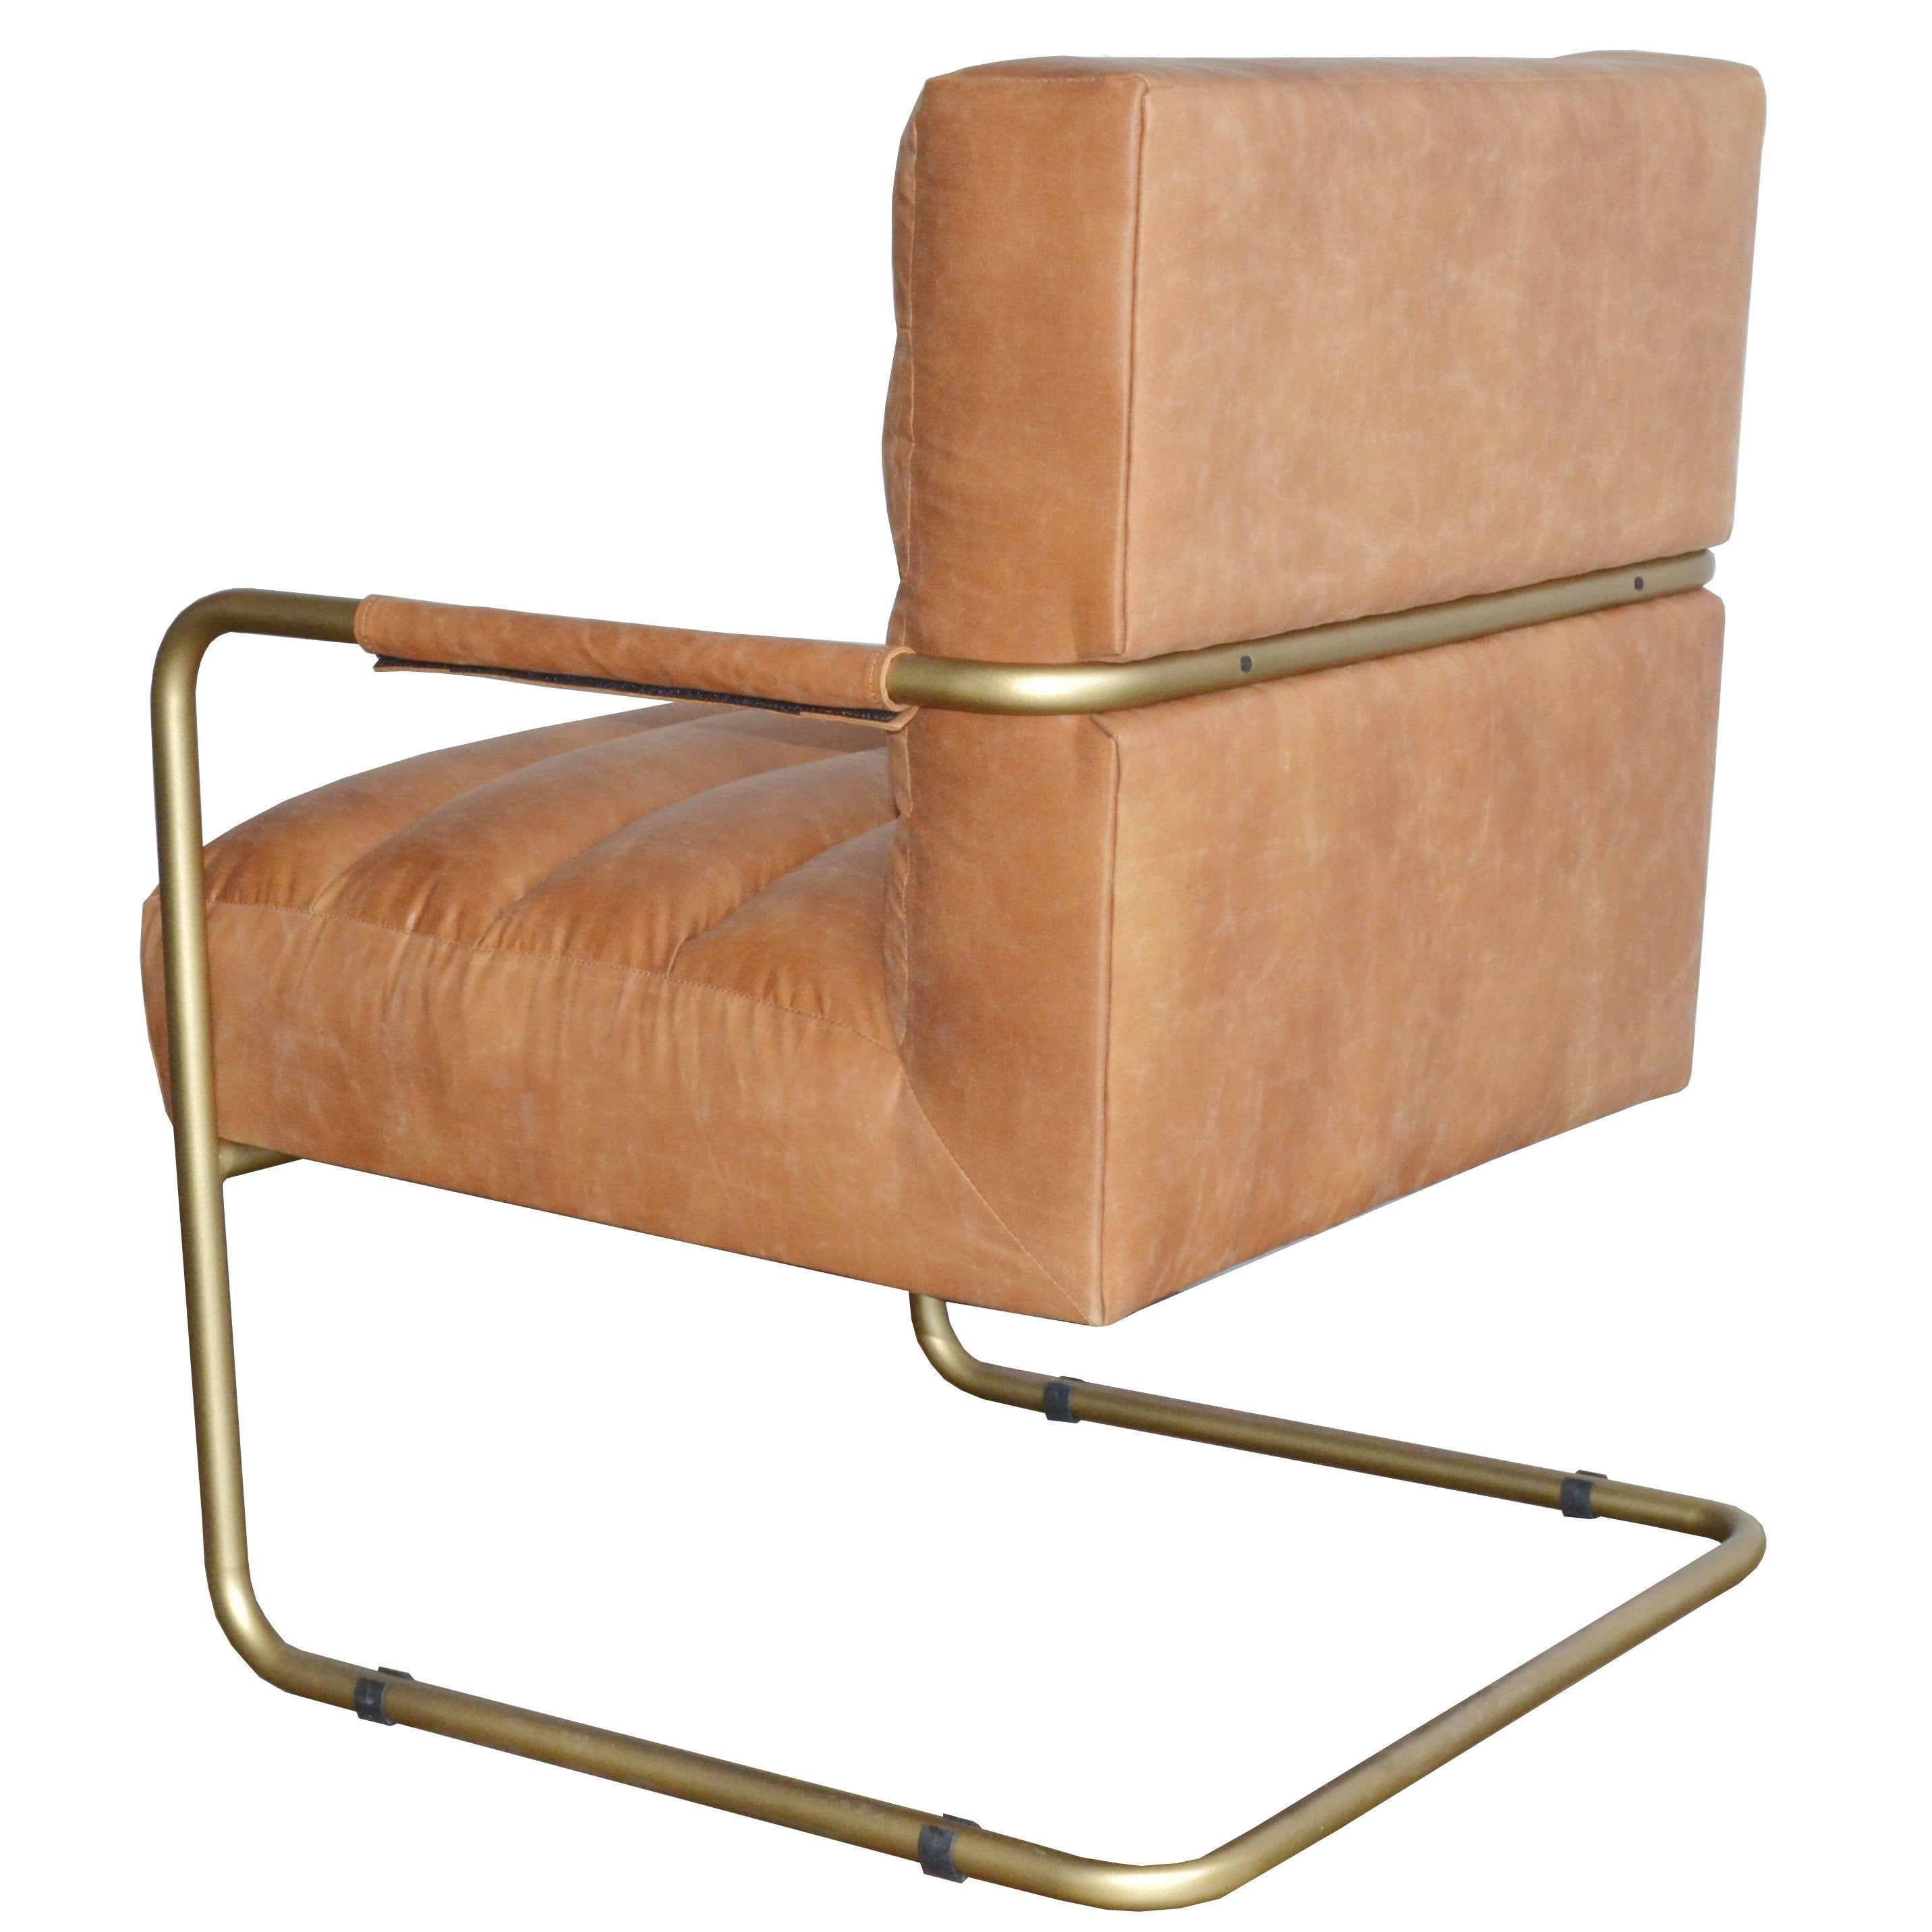 Super Mesquite Lounge Chair Vintage Copper Andrewgaddart Wooden Chair Designs For Living Room Andrewgaddartcom